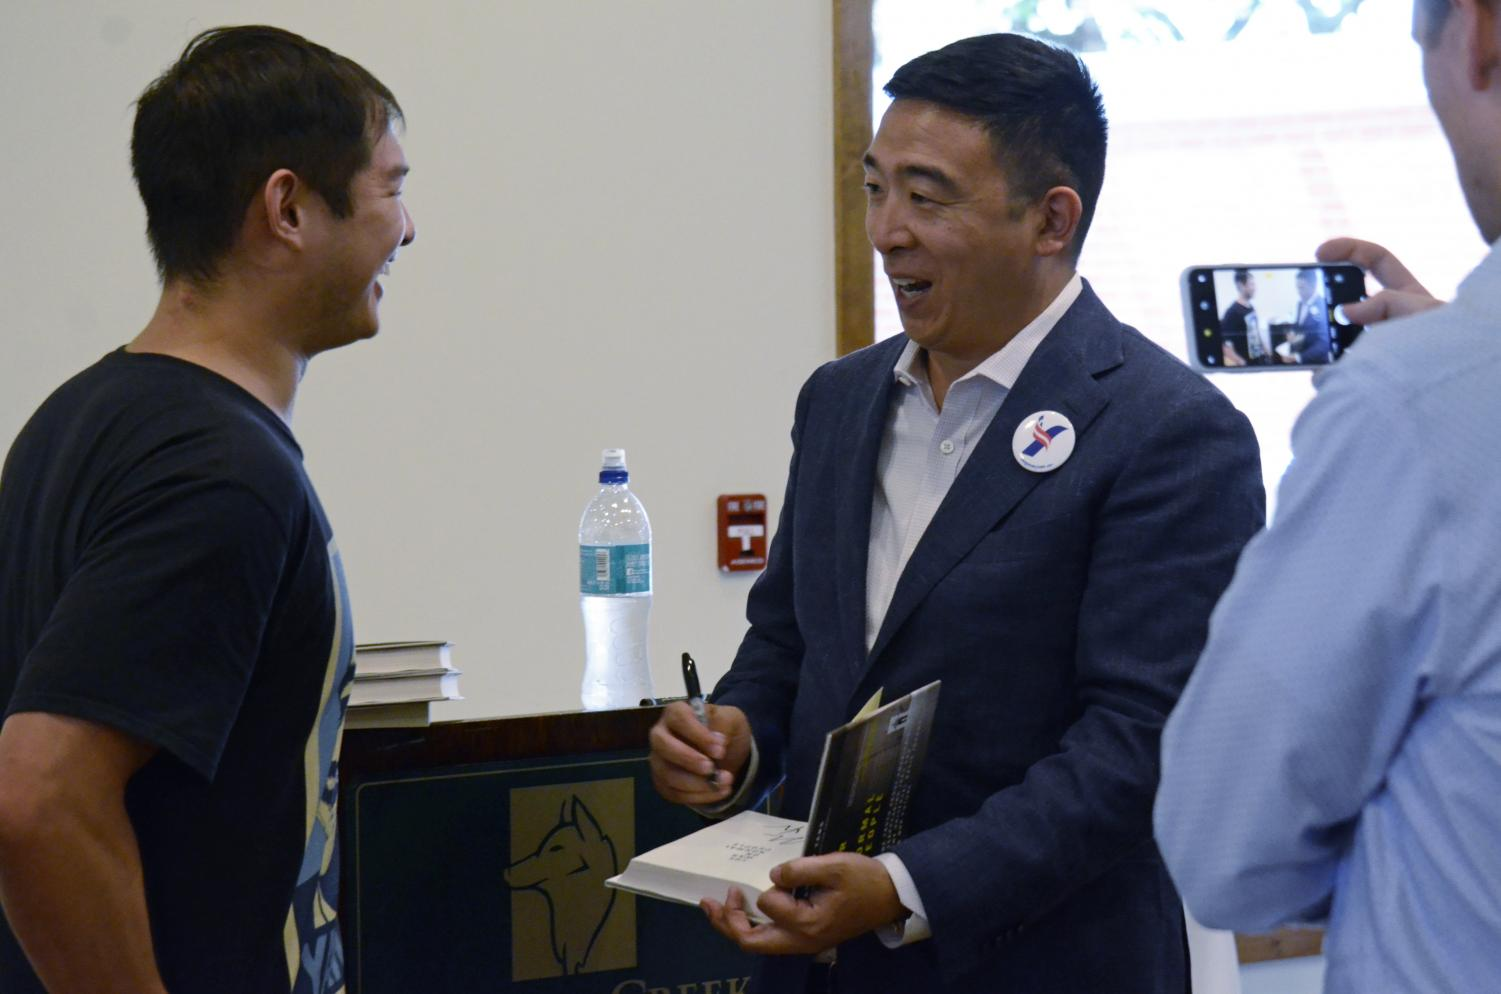 Yang+signs+a+copy+of+his+book+The+War+on+Normal+People+for+a+supporter+while+his+campaign+manager+Zach+Graumann+snaps+a+picture.+